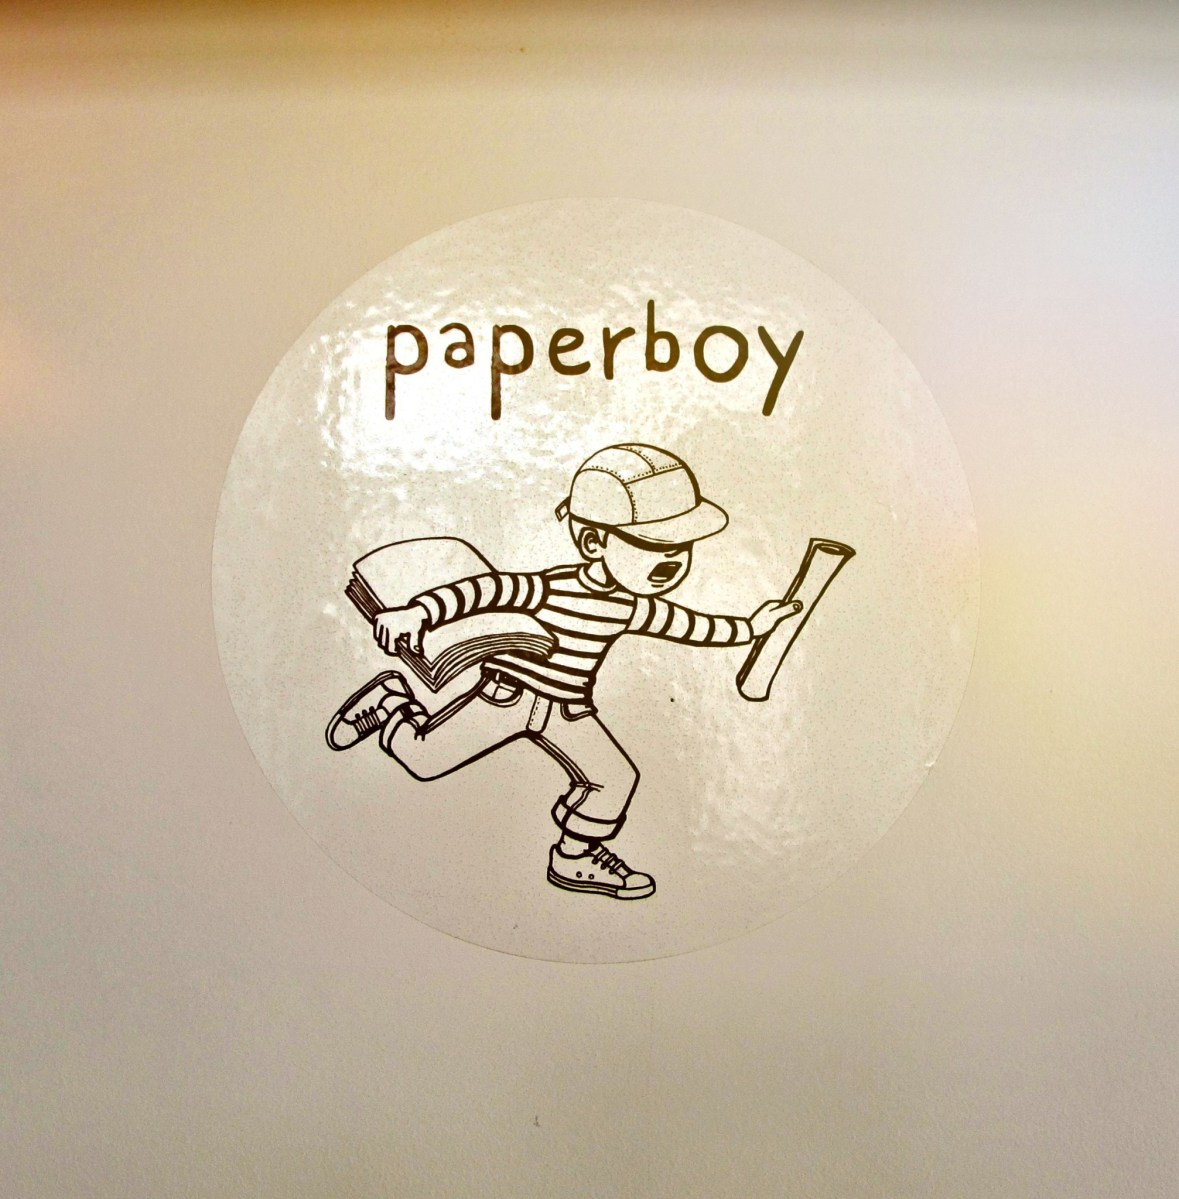 Paperboy - Never judge a place by its cover